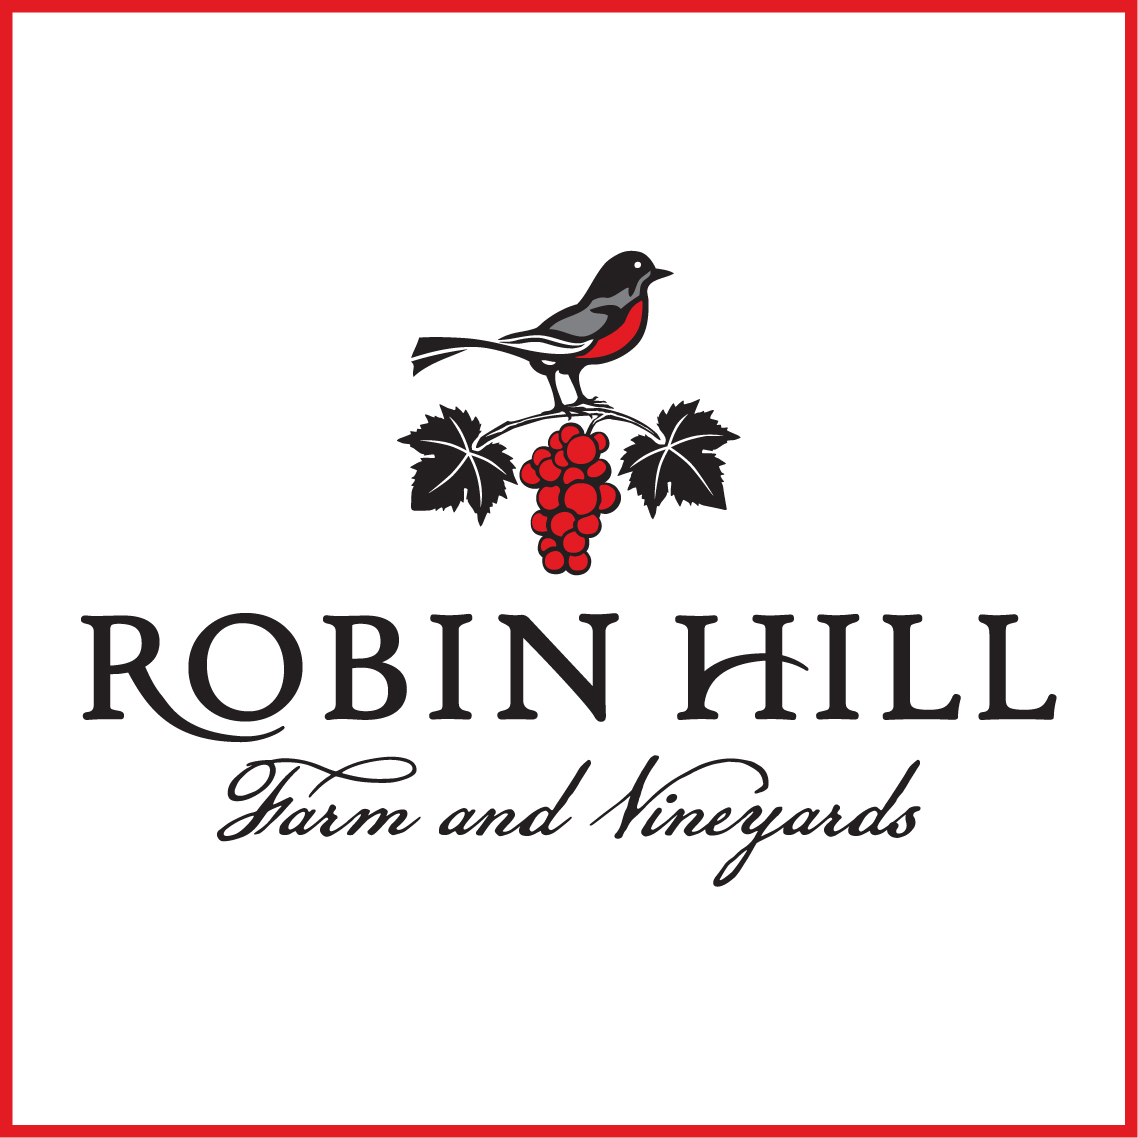 Robin Hill Farm and Vineyards